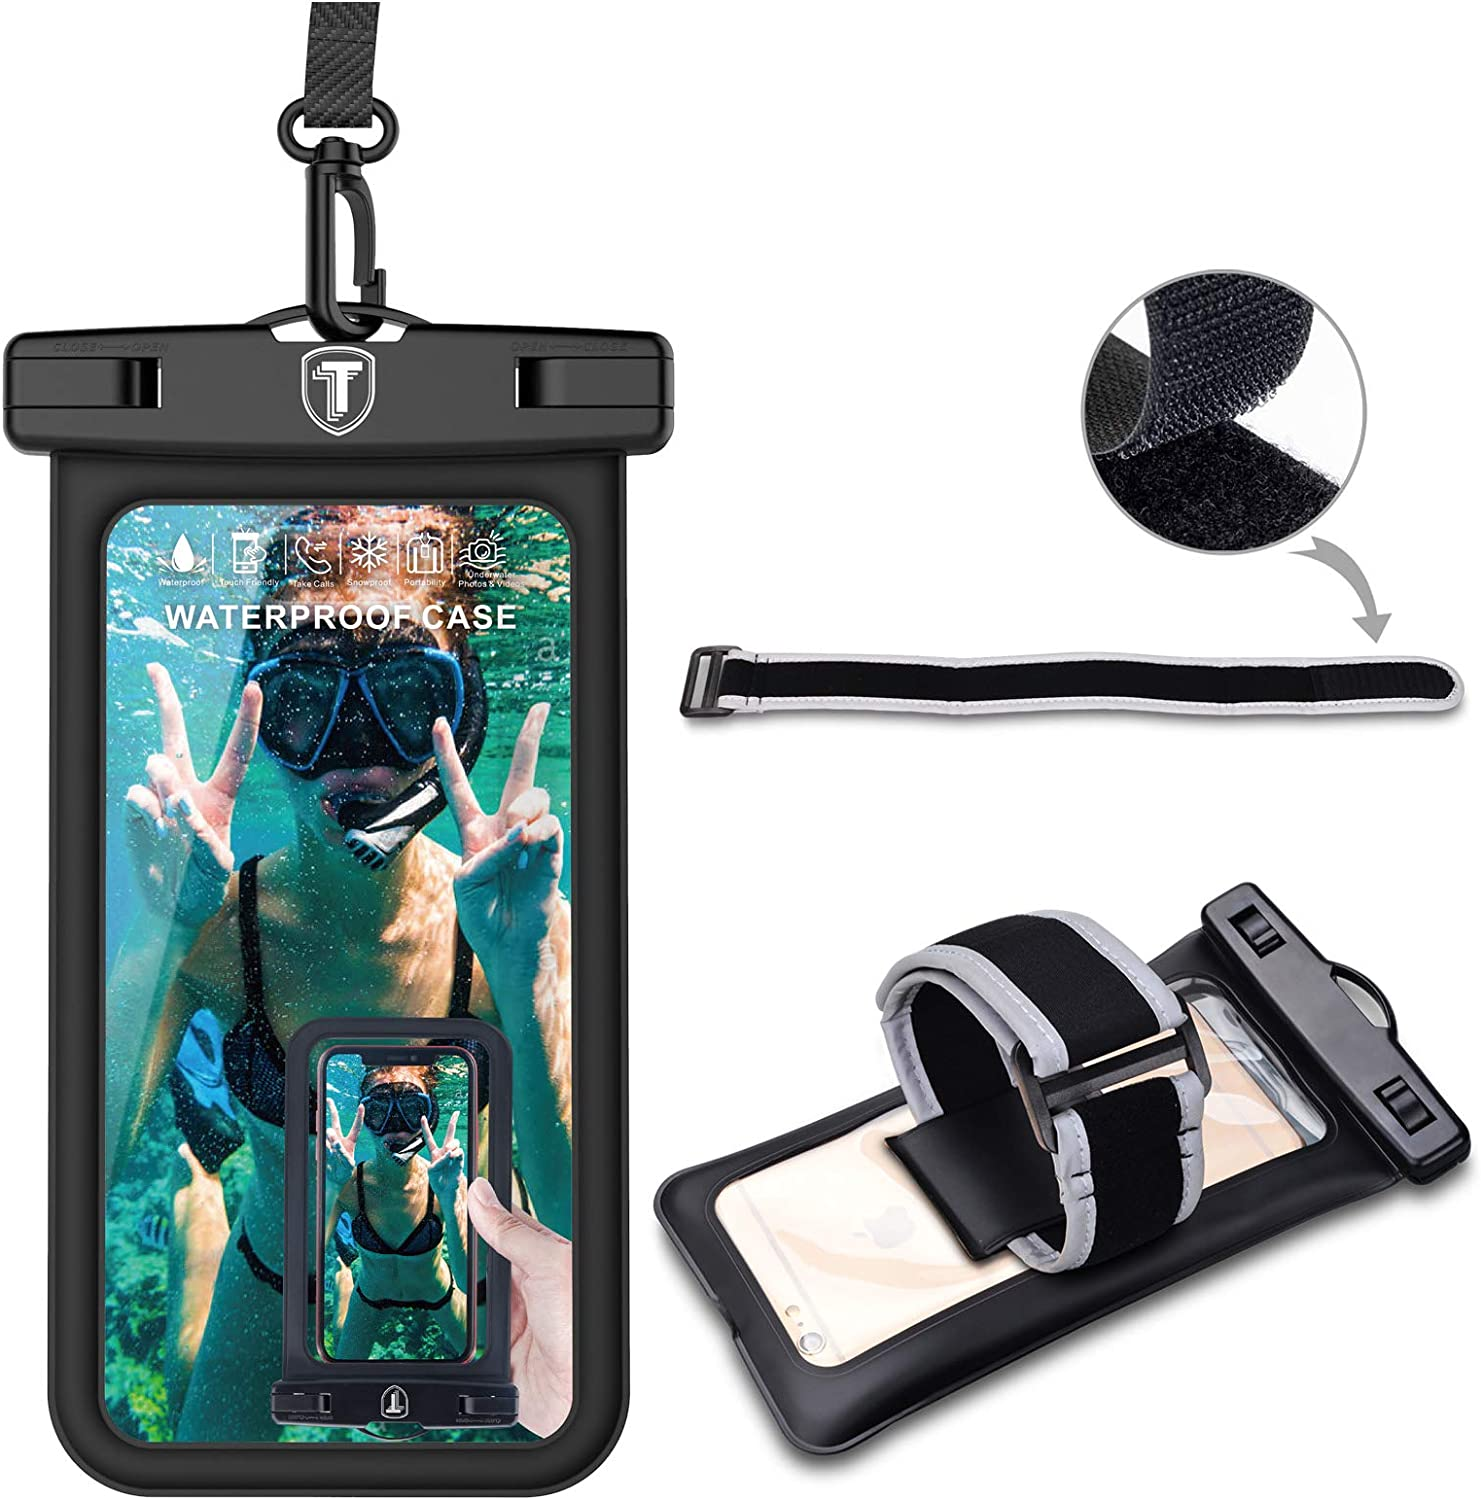 Njjex Waterproof Phone Pouch Floating Case Cellphone Dry Bag ArmBand/Lanyard For Samsung Galaxy Note 20 Ultra S21 S20 S10 S10e S9 A02S A12 A32 A42 A52 A72 A01 A11 A21 A51 A71 5G LG Stylo 7 6 5 K51 K31